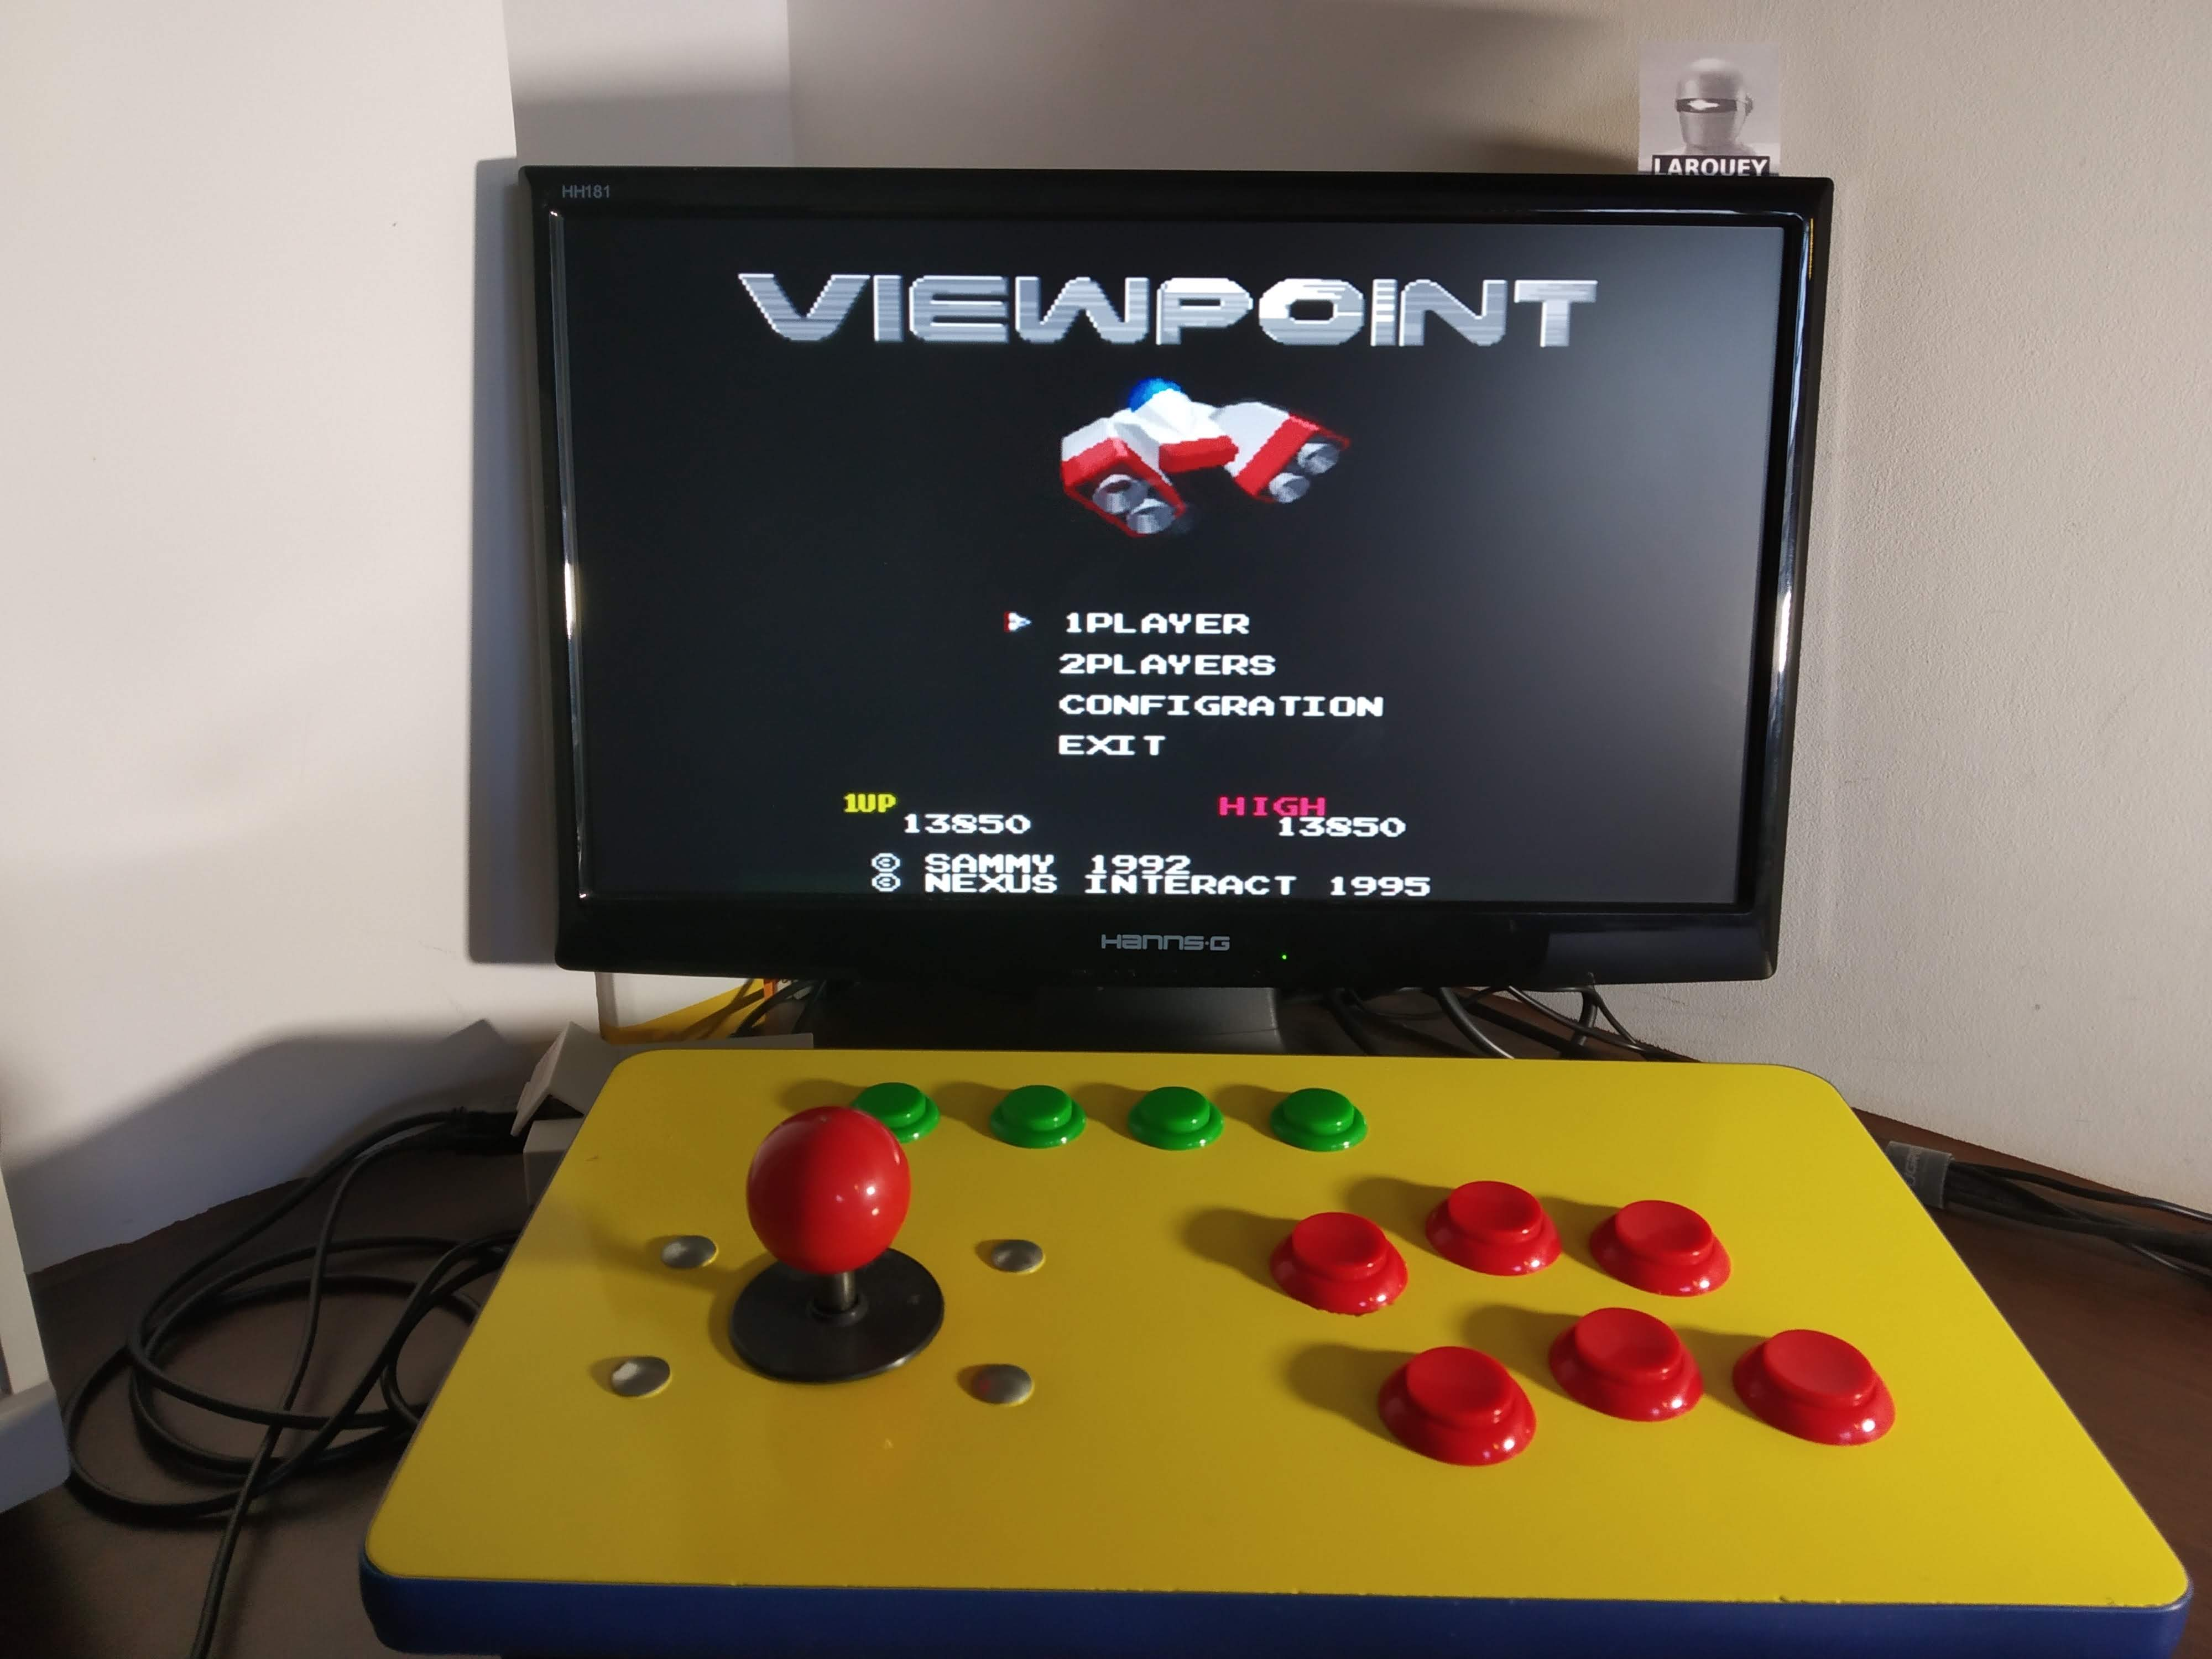 Viewpoint 13,850 points